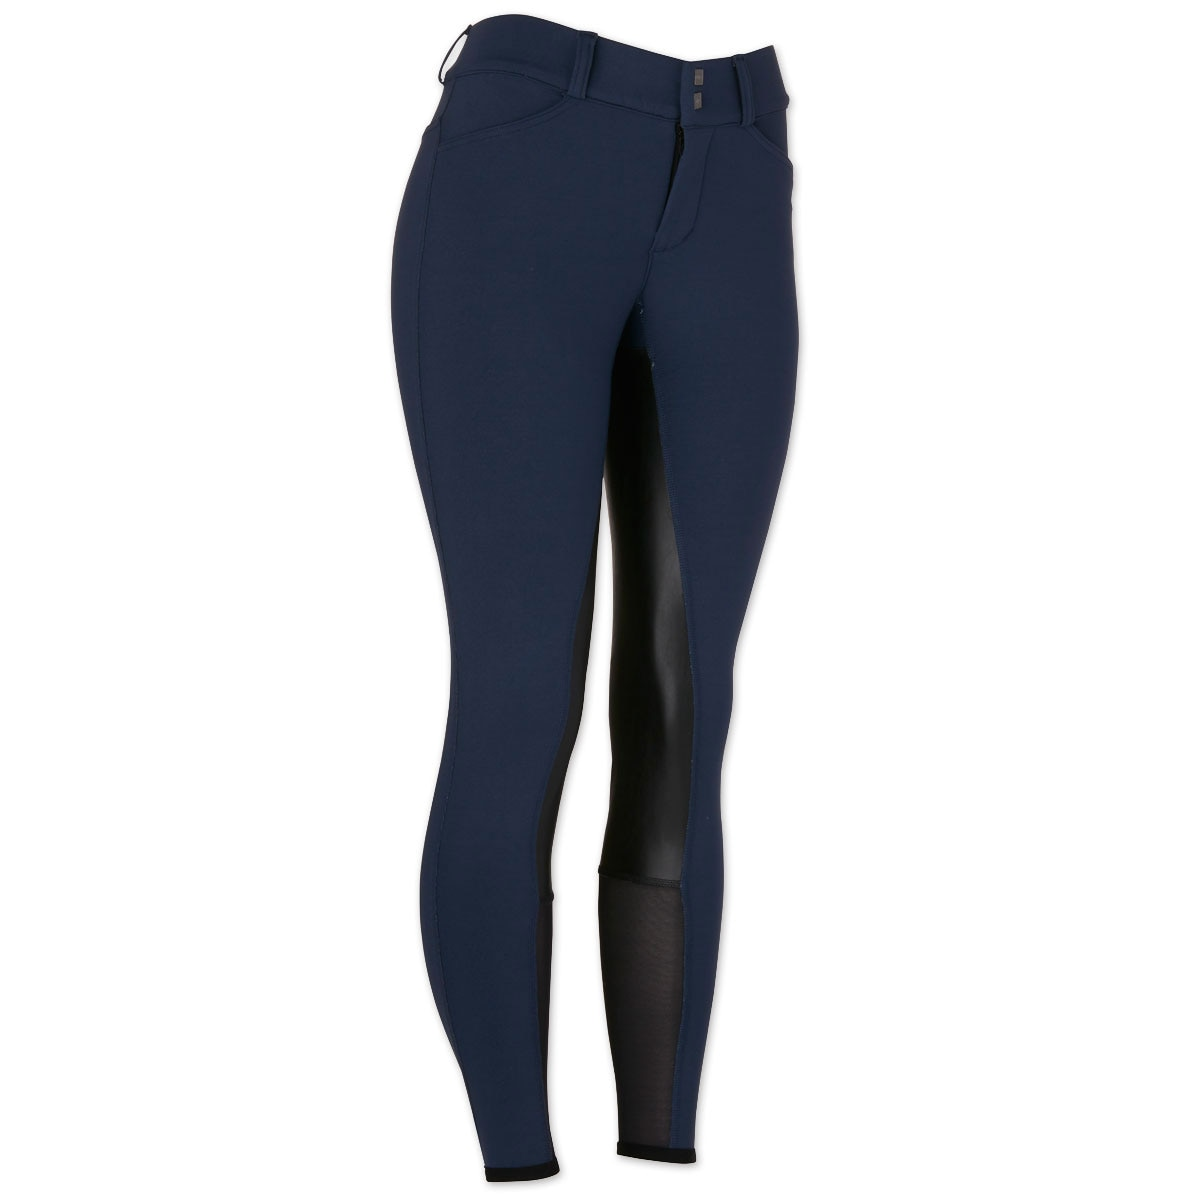 FITS Free Flex Full Seat Breeches - Front Zip - Sale!